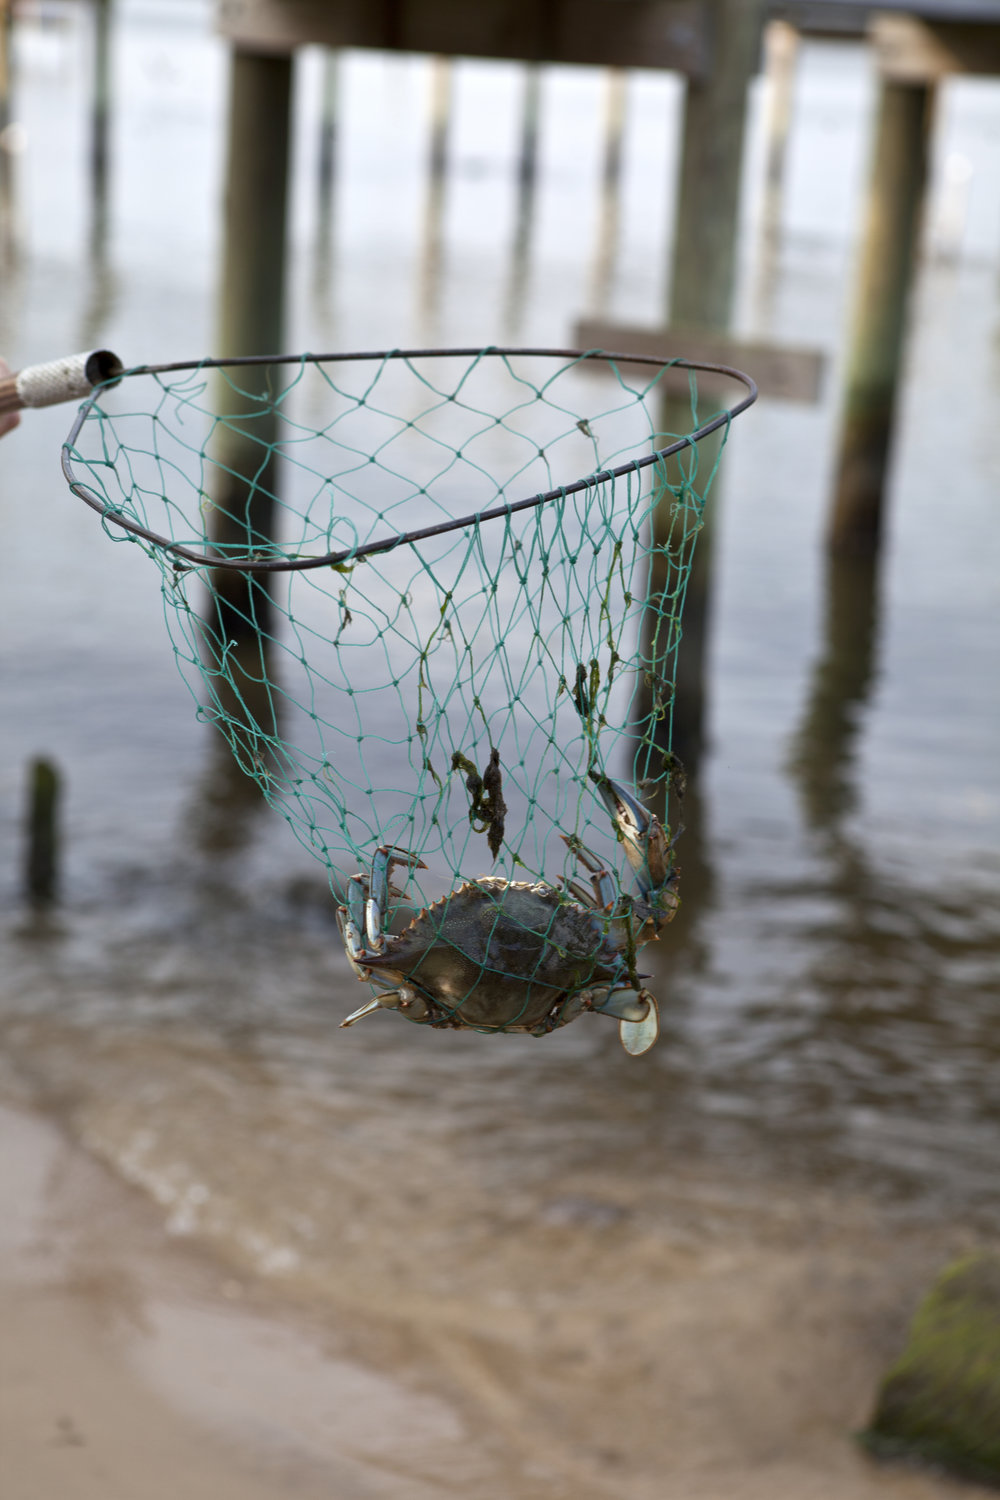 crab in net.jpg